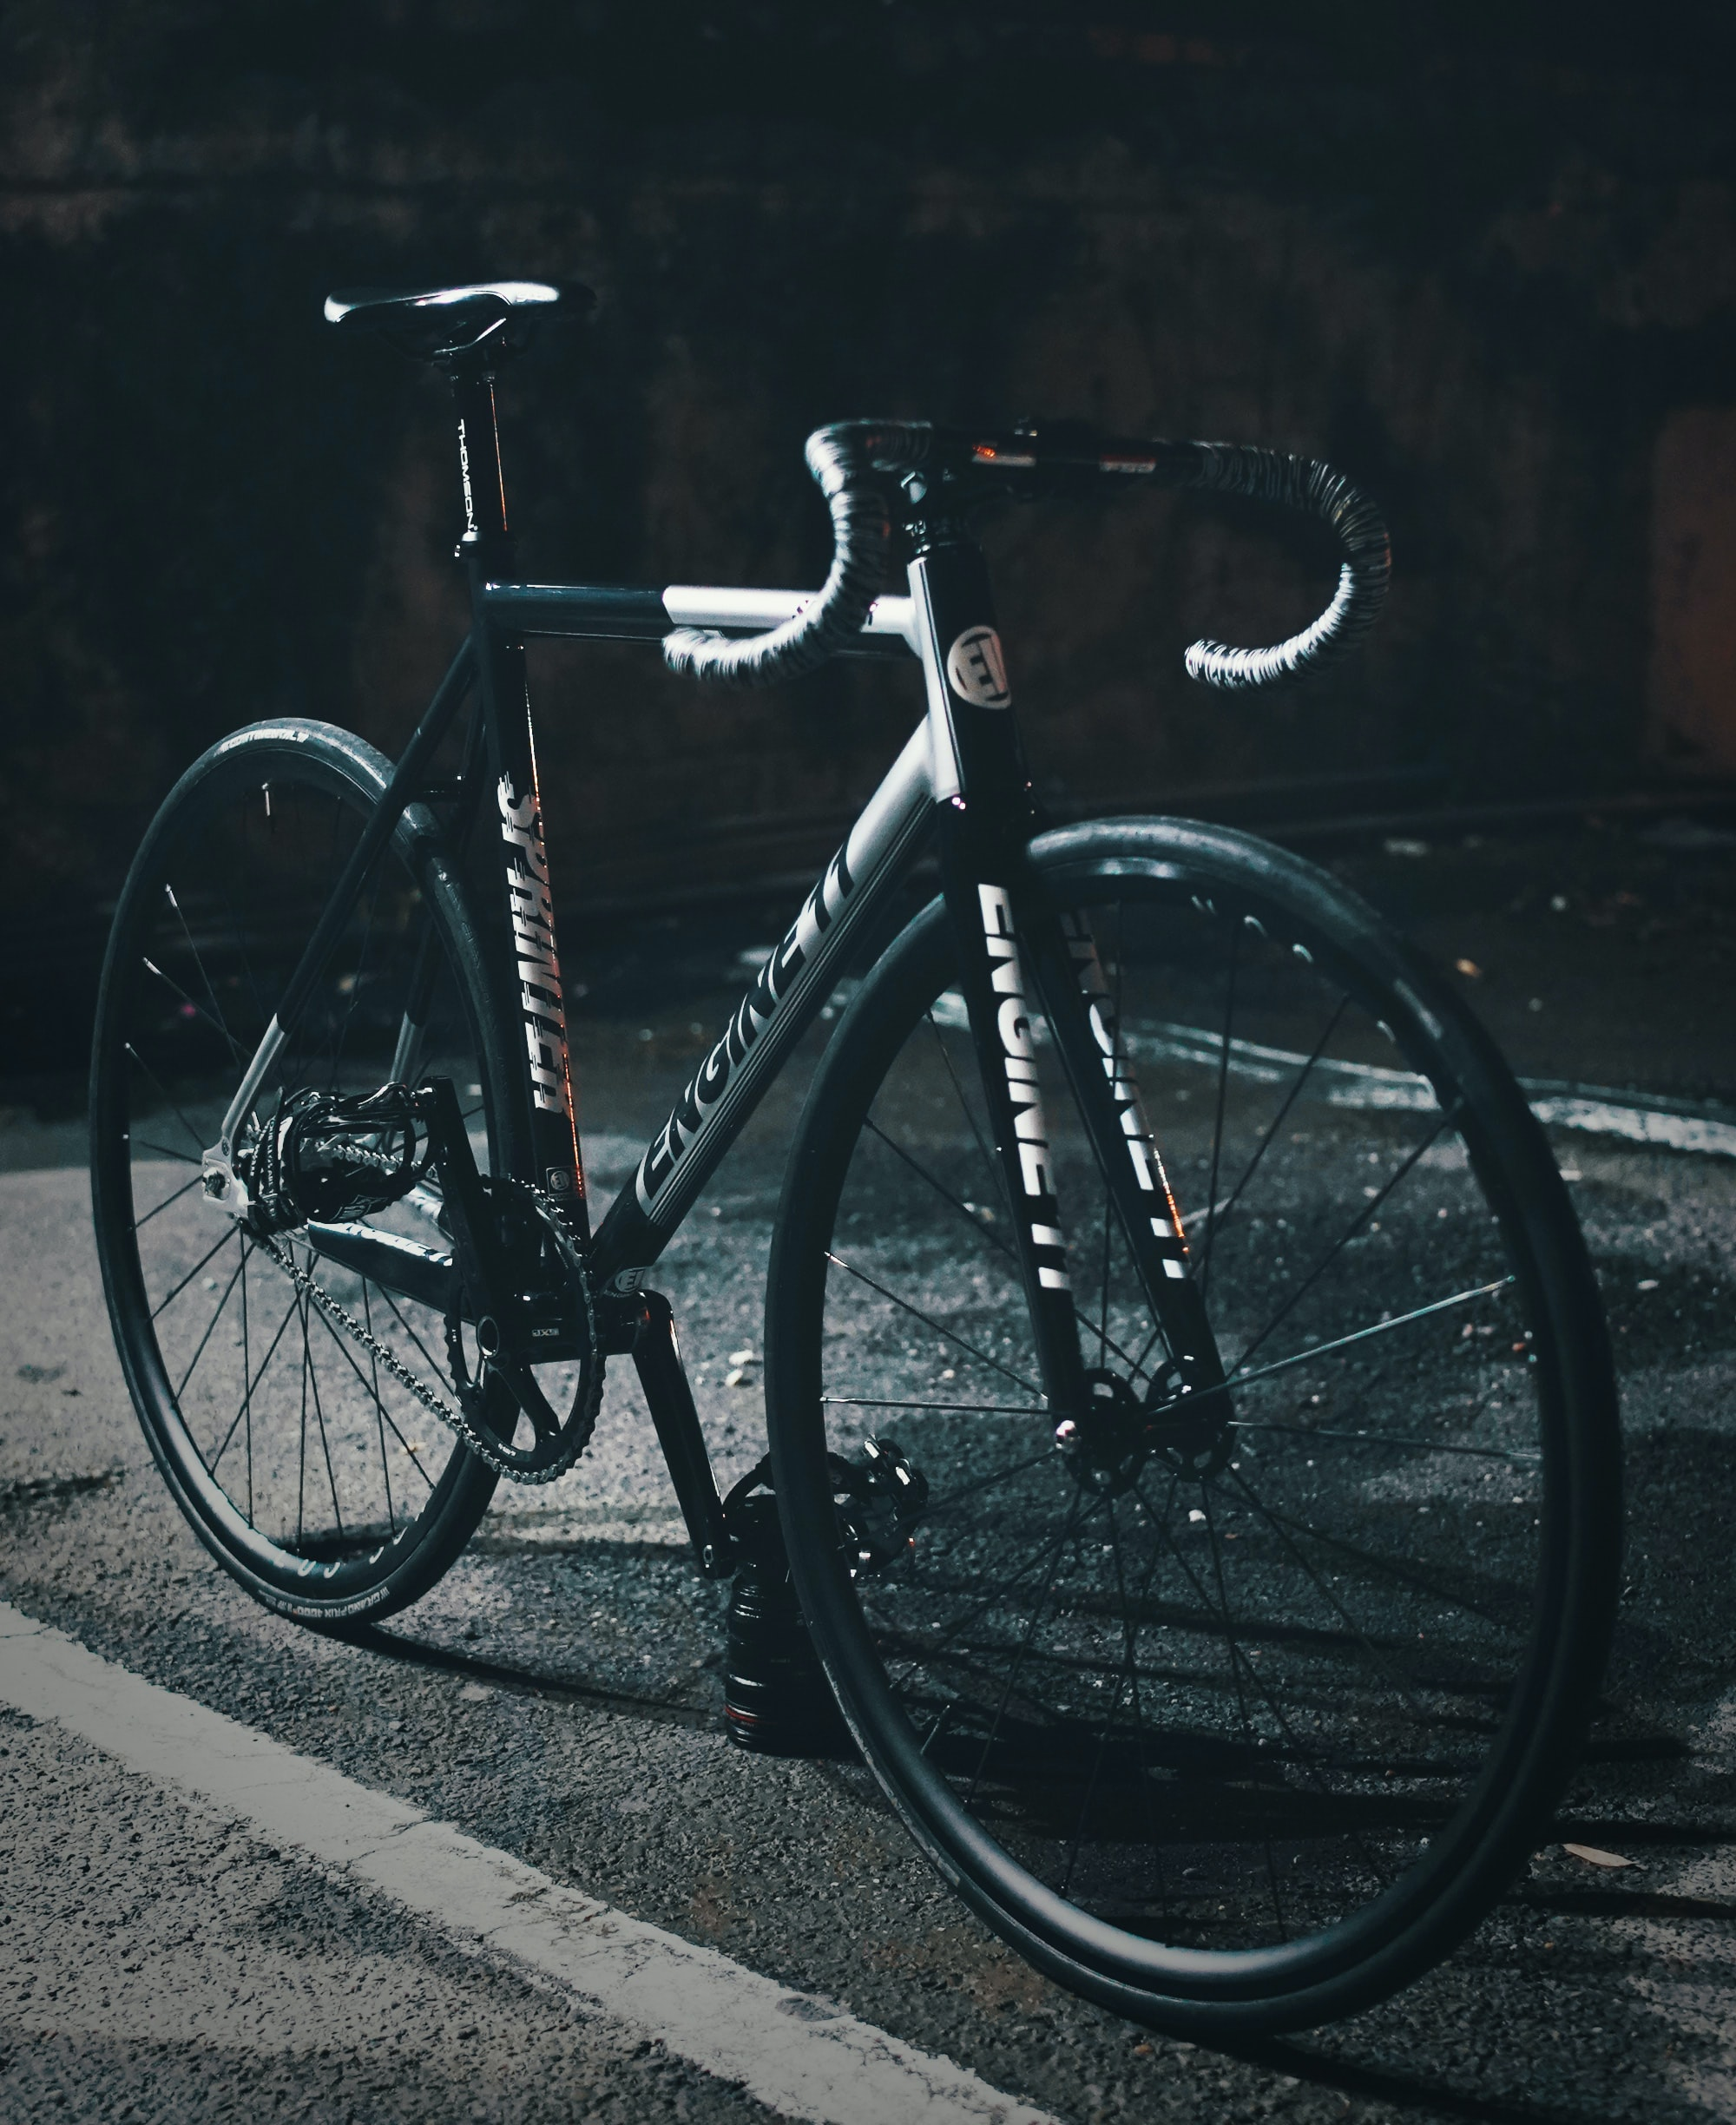 black and gray Engine 2 road bike at parking space outdoor